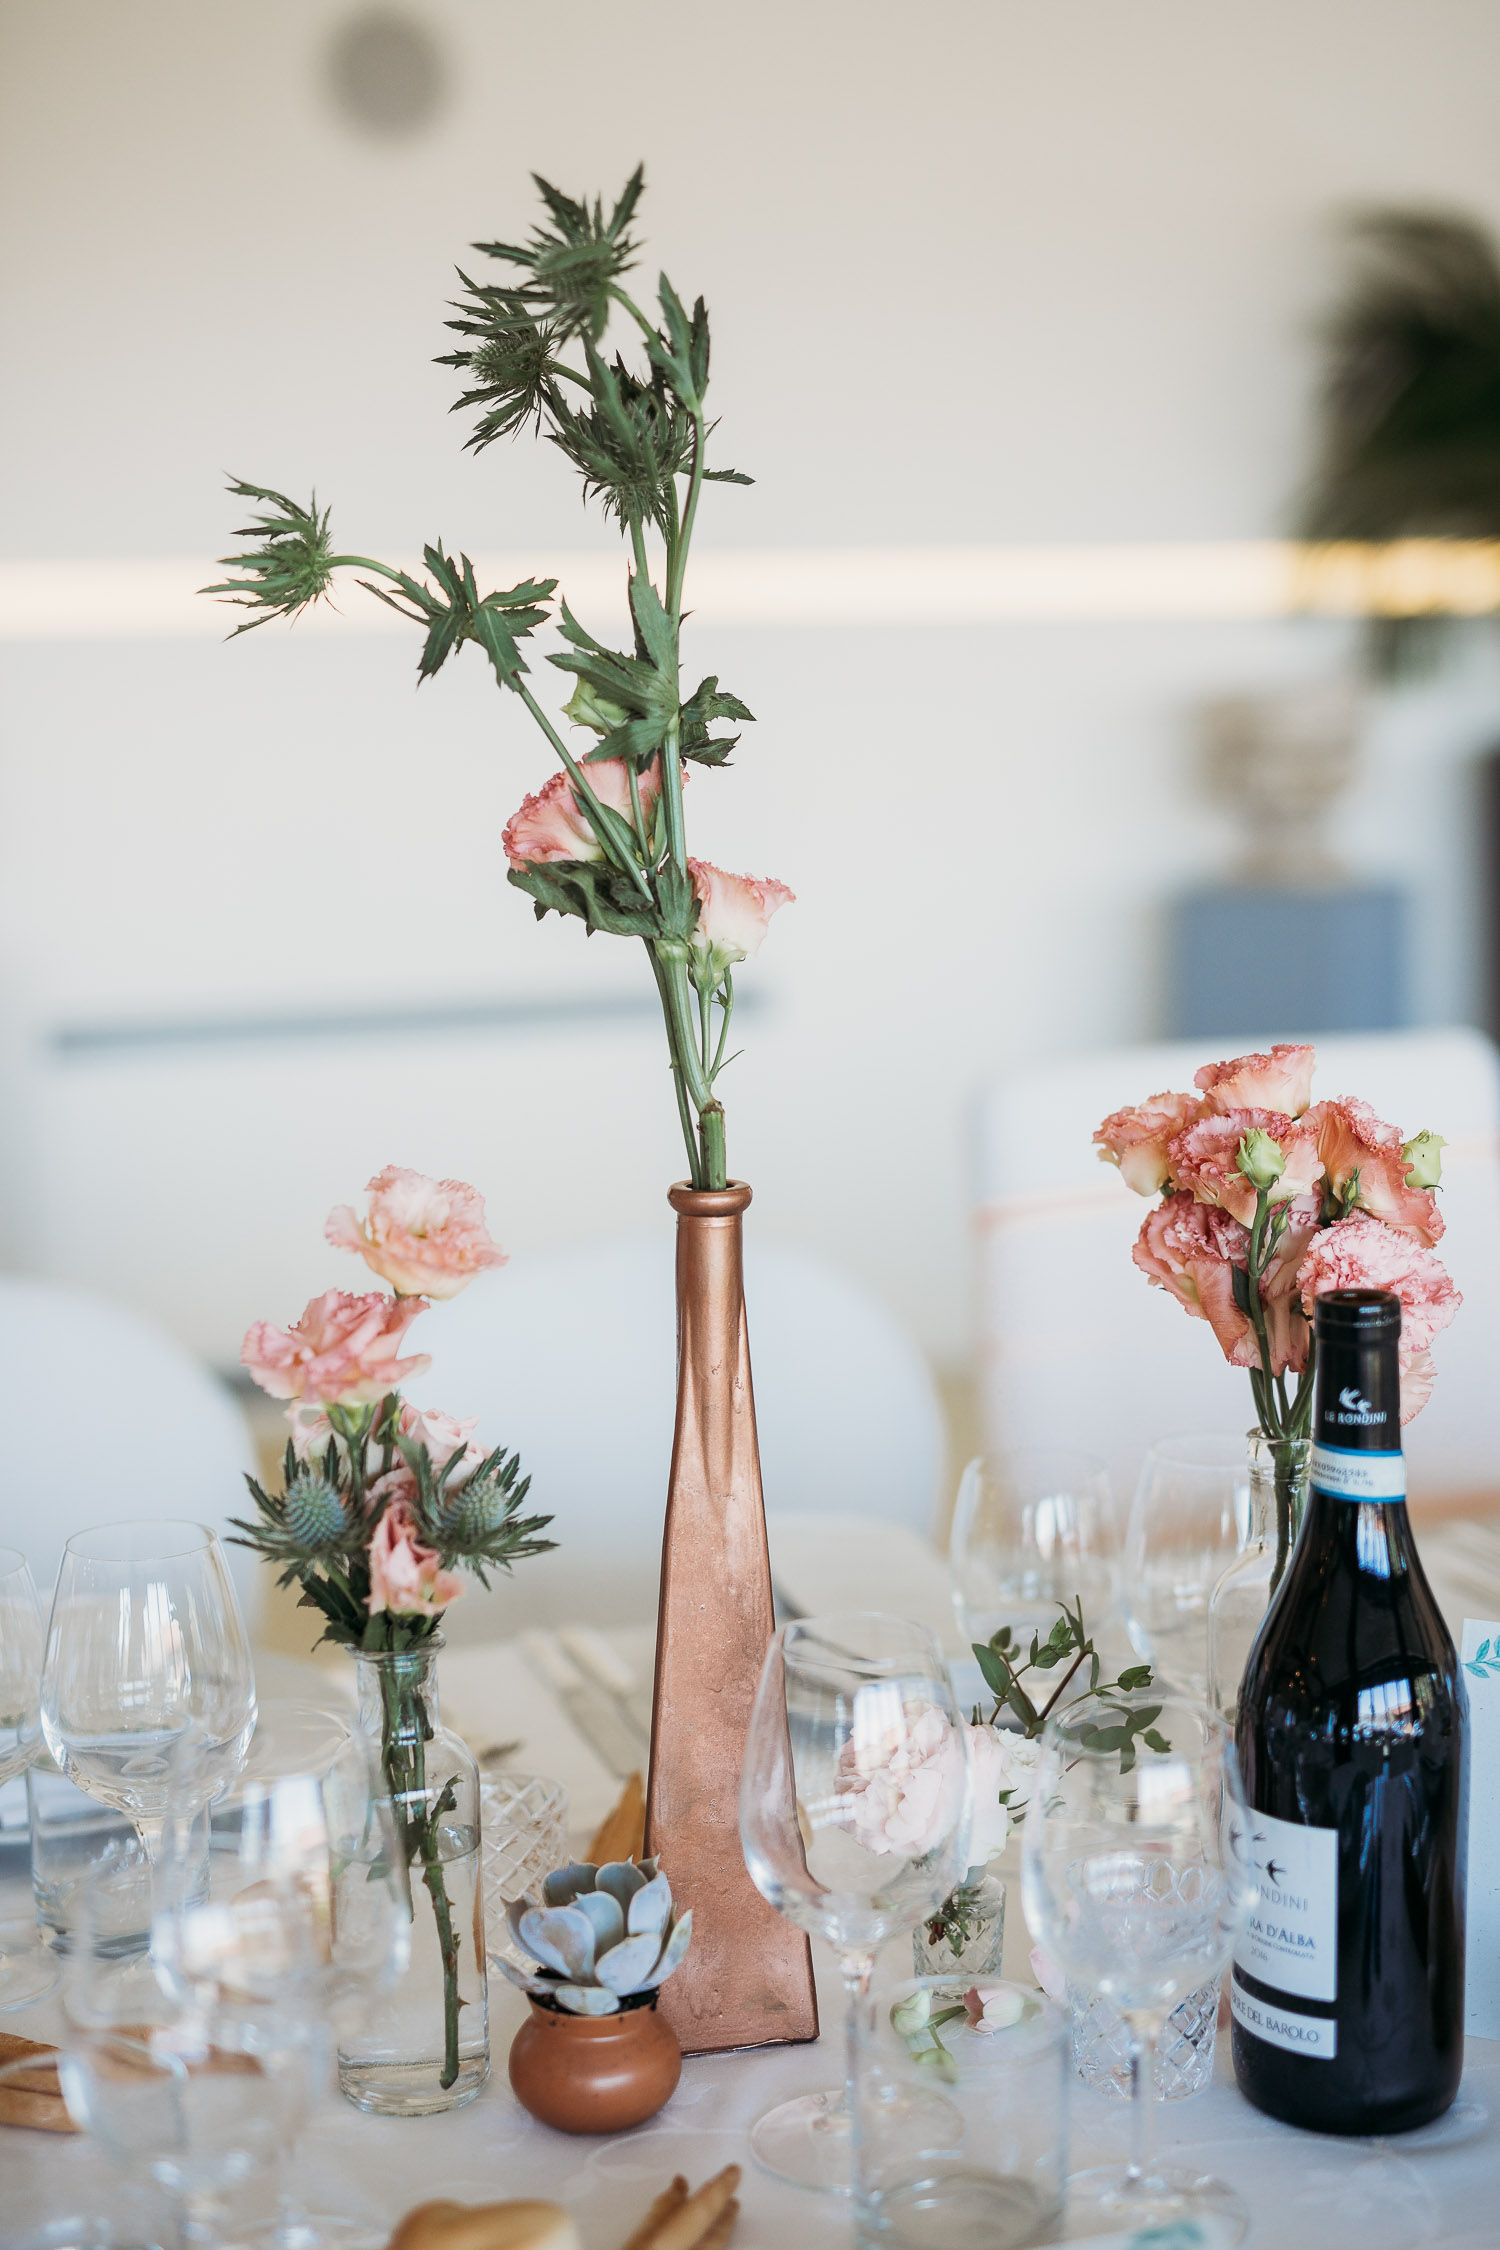 Bronze modern decor for wedding tables with simple flowers